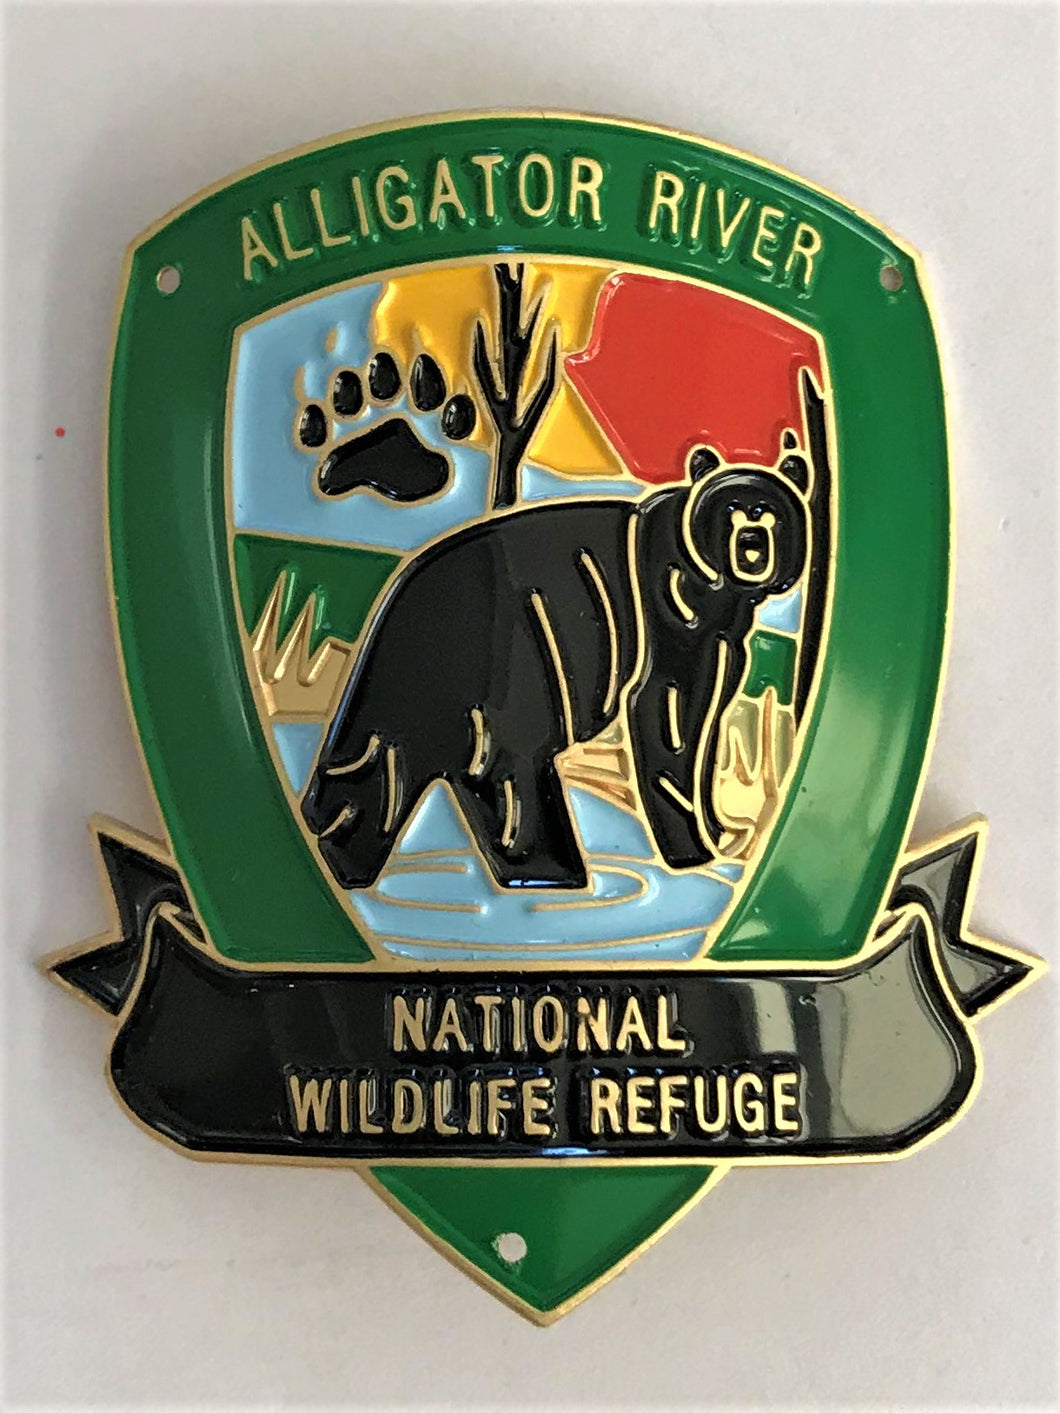 Alligator River National Wildlife Refuge Hiking Medallion